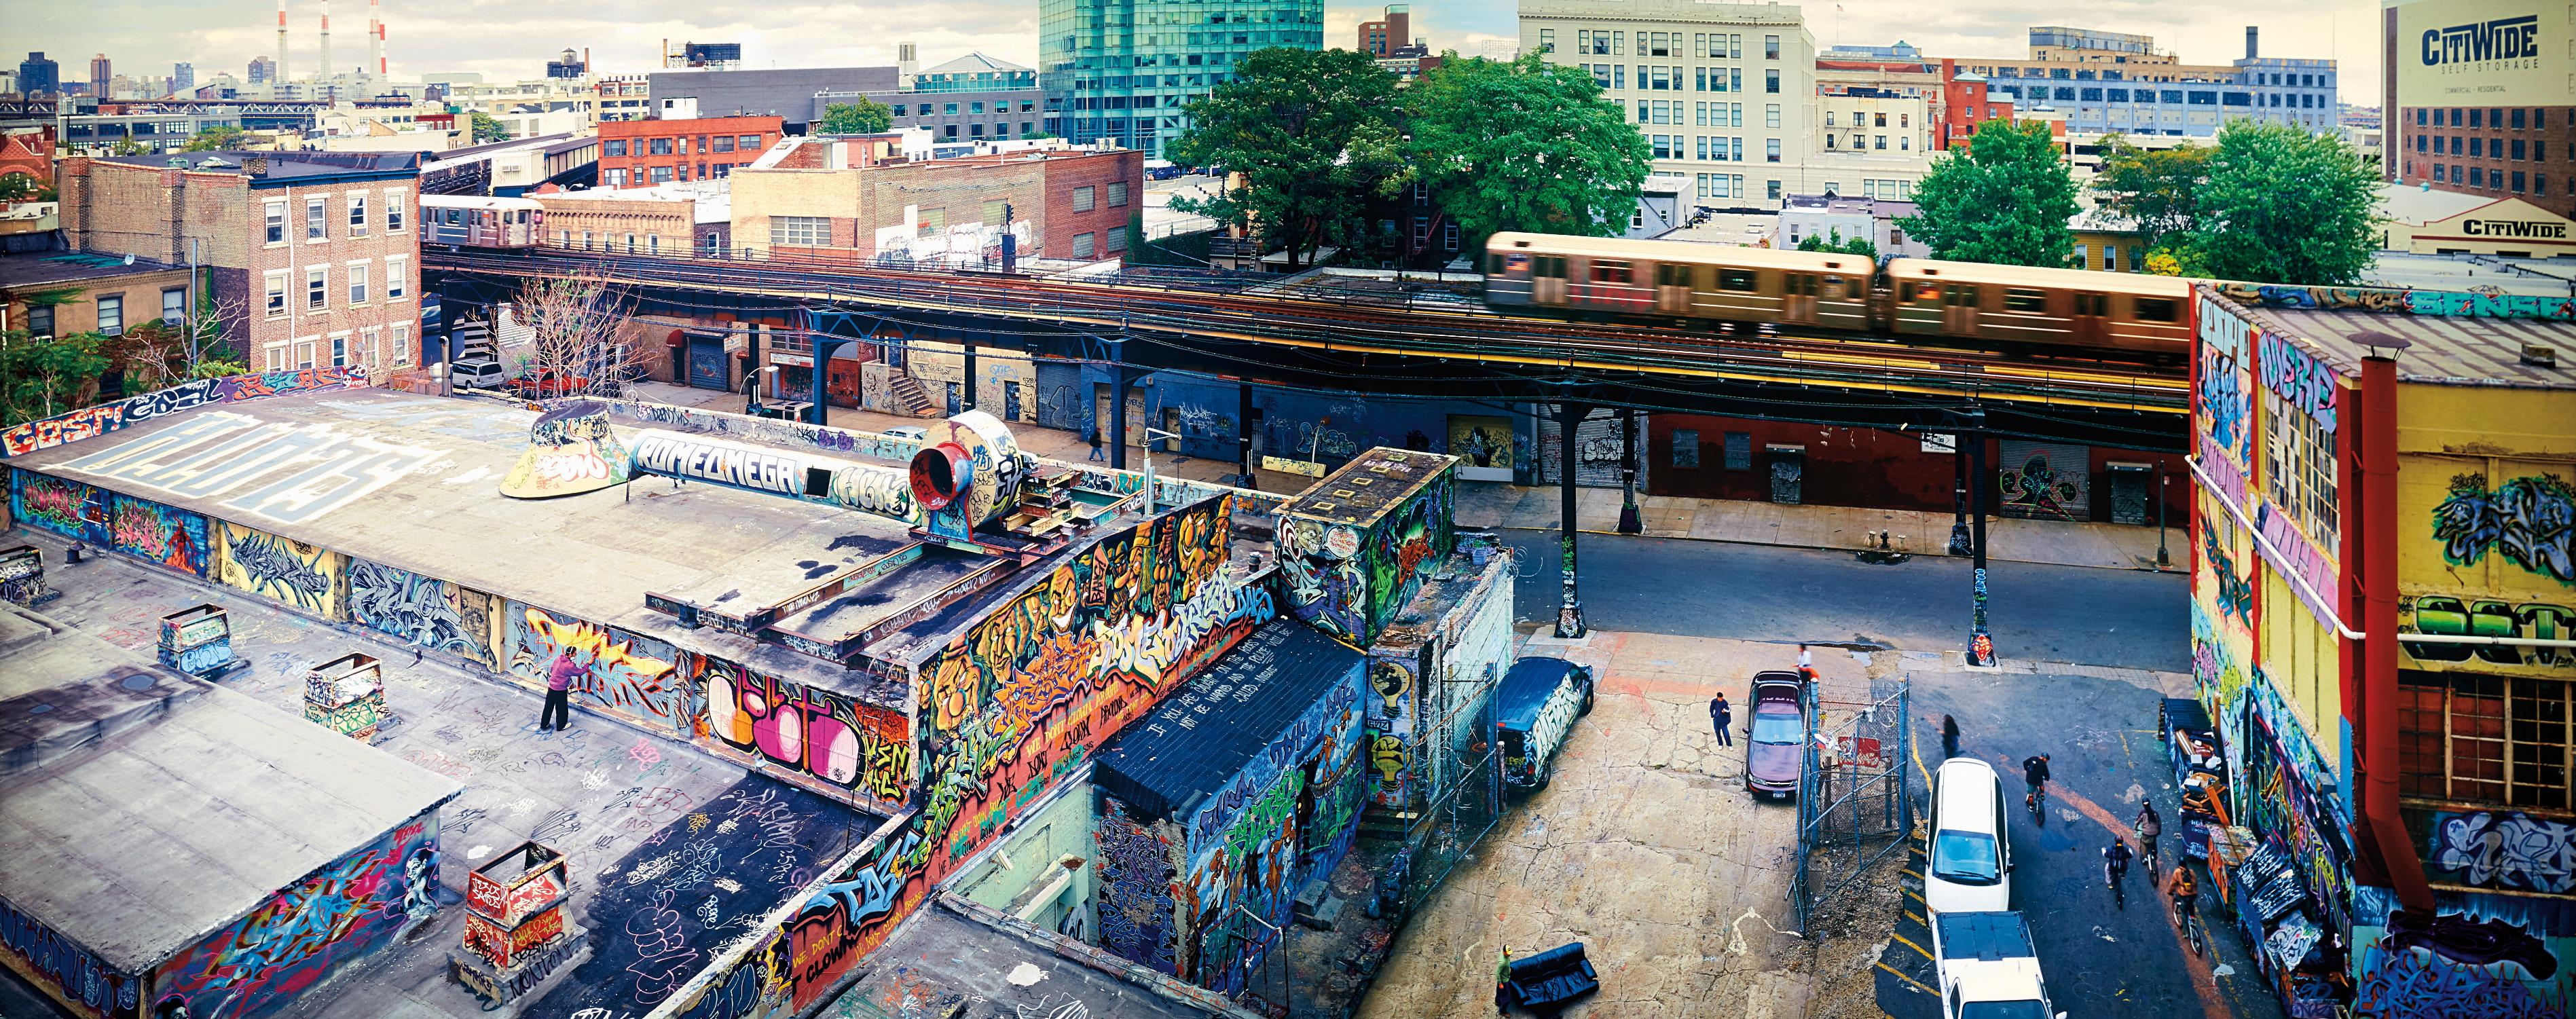 Jeff Chien-Hsing Liao-5 Pointz, Long Island City from Habitat 7-2004